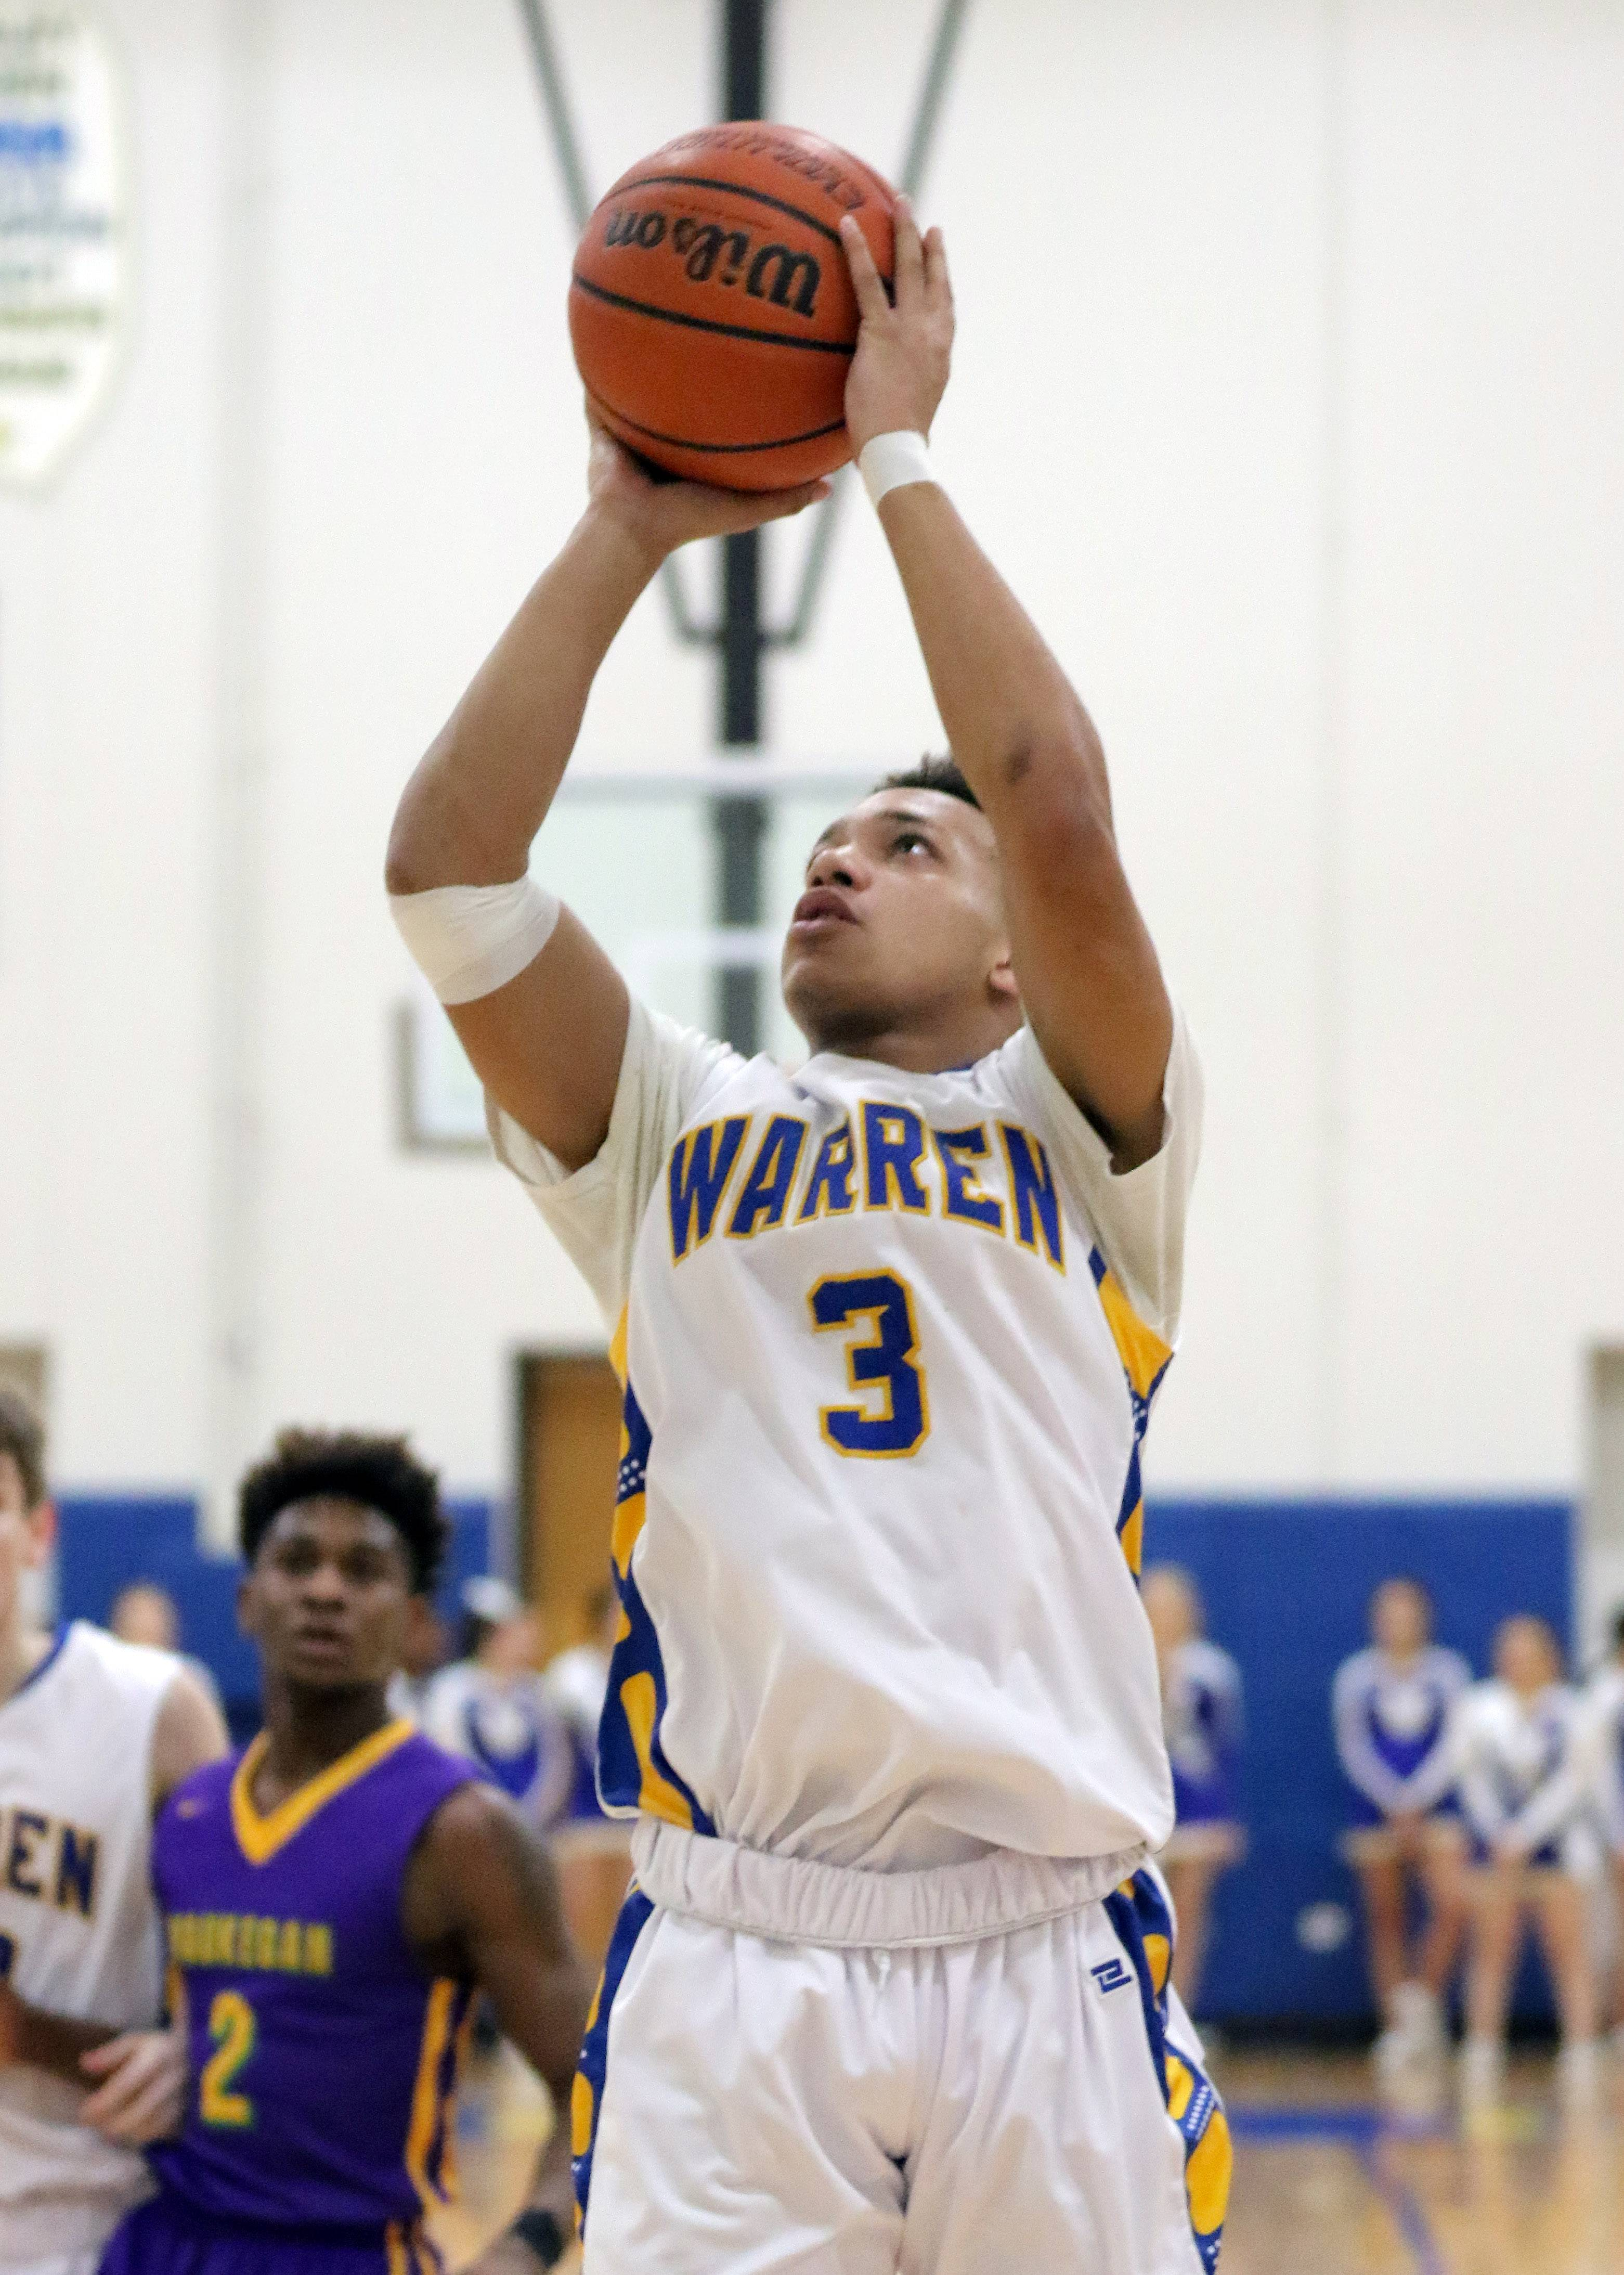 Warren's Jayson Dorsey pulls up for a jumper against Waukegan on Tuesday night in Gurnee.